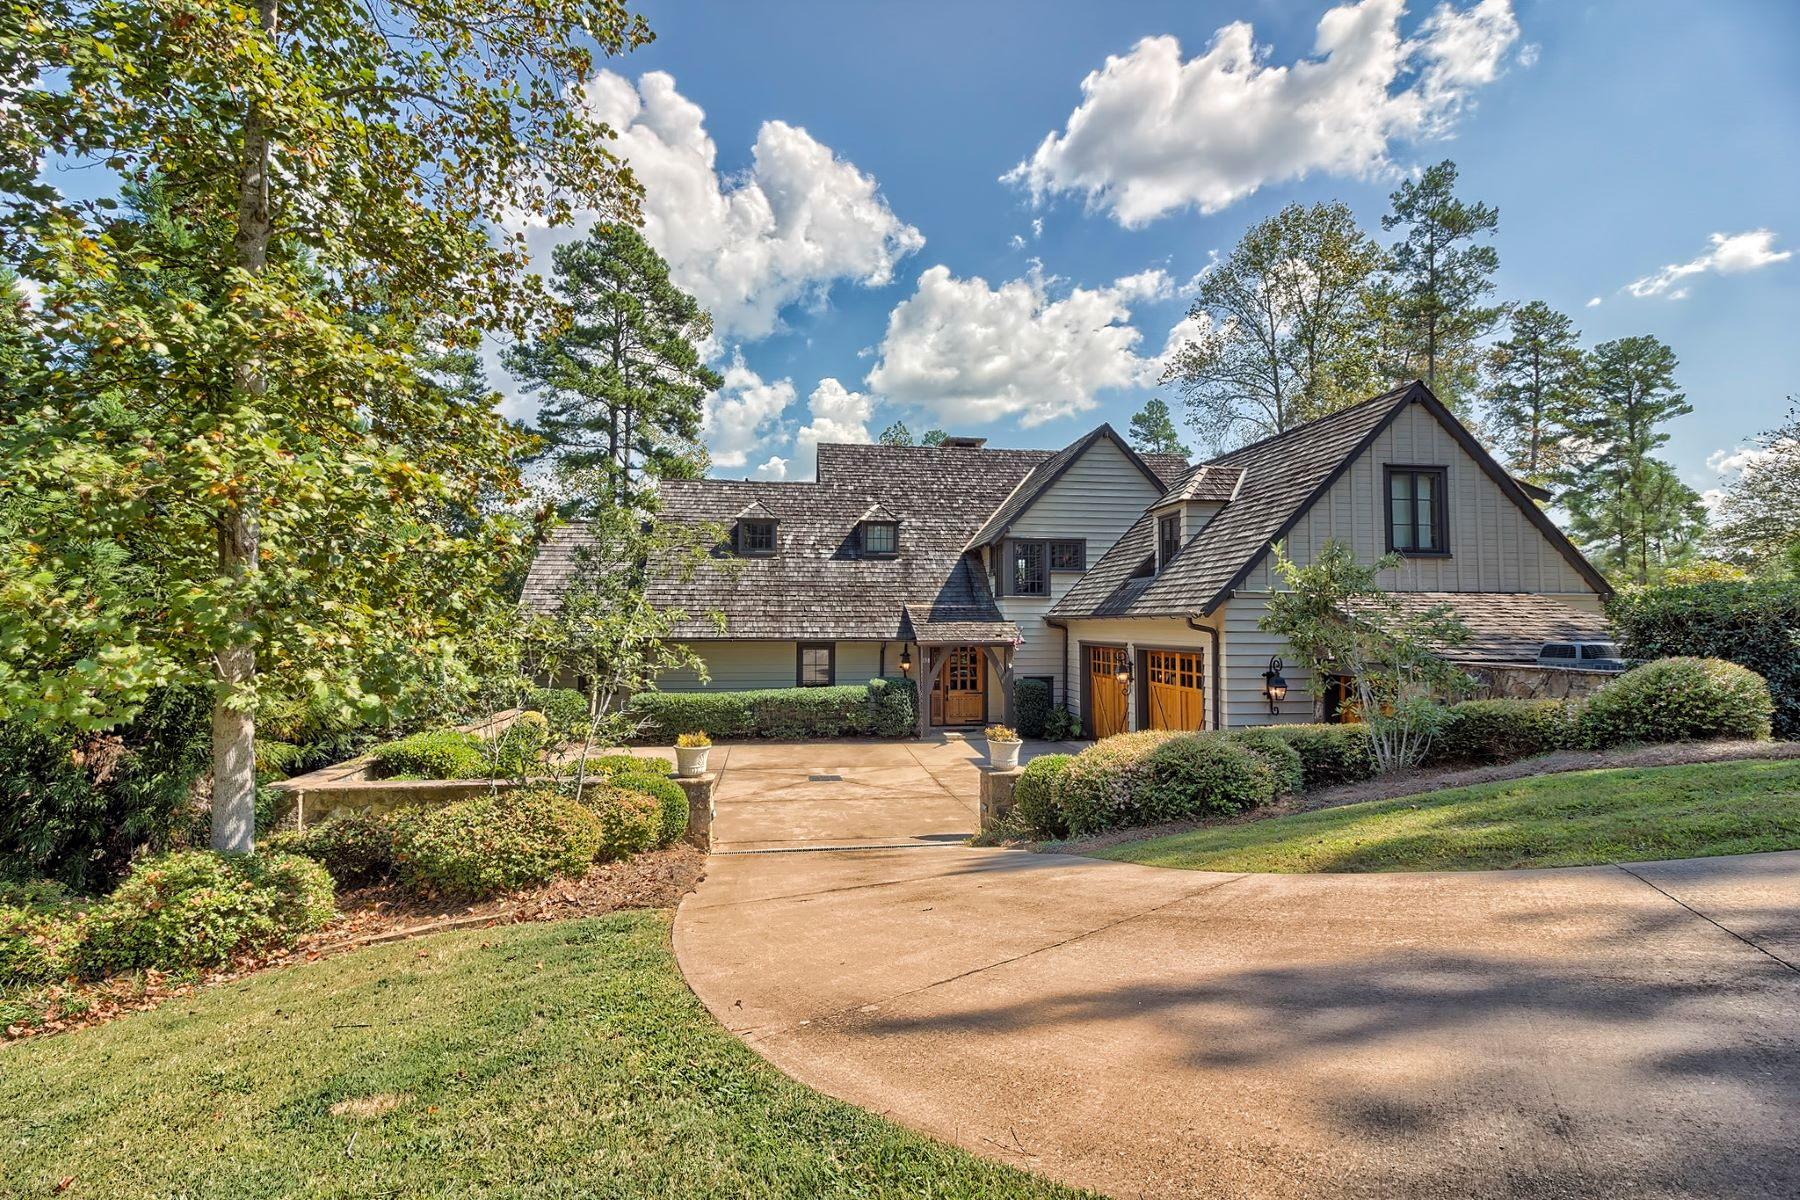 Частный односемейный дом для того Продажа на Perfect Marriage of Lakehouse Living & Custom Craftsmanship 138 N. Lake Drive, The Reserve At Lake Keowee, Sunset, Южная Каролина, 29685 Соединенные Штаты